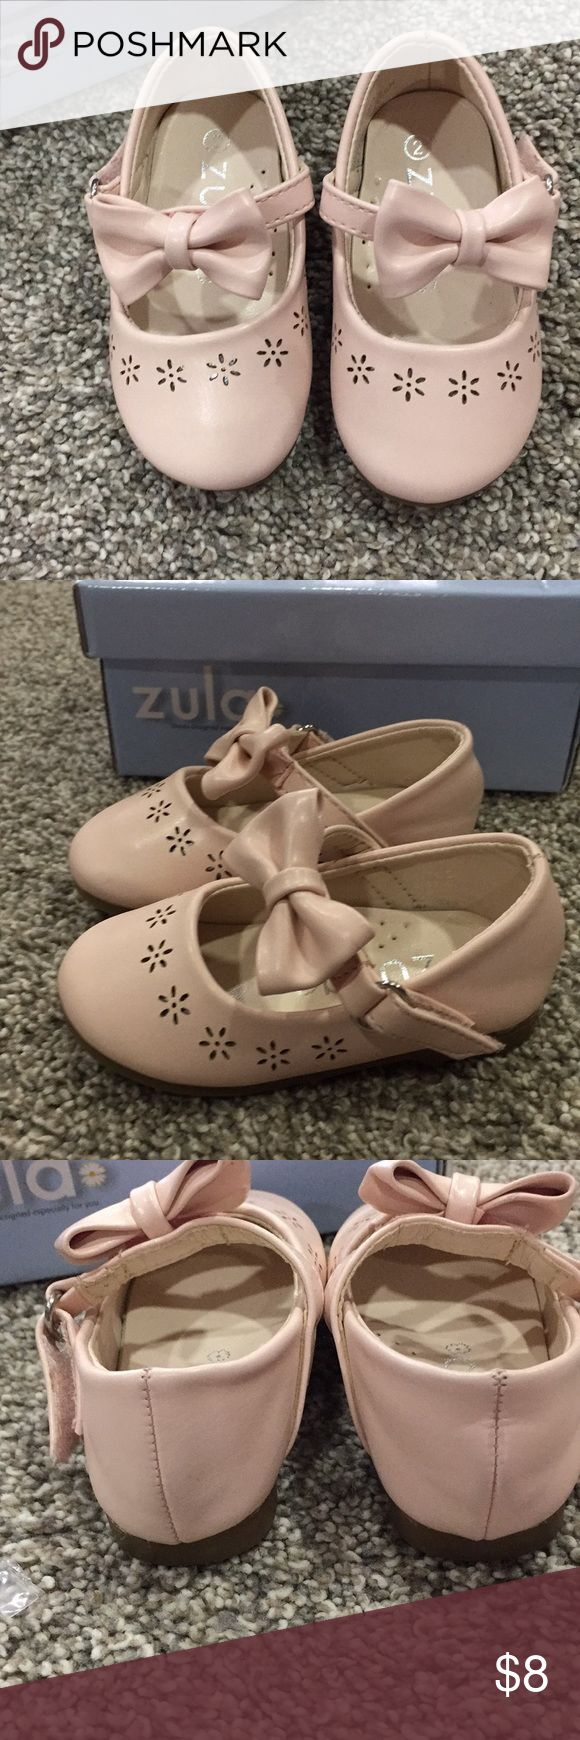 💗Baby Girl Zuma Shoes💗 Super cute shoes! My daughter has just outgrown them. The box says nude. They are kinda a light pinkish color. Velcro fasteners. Smoke free home! 💗 Zula Shoes Baby & Walker